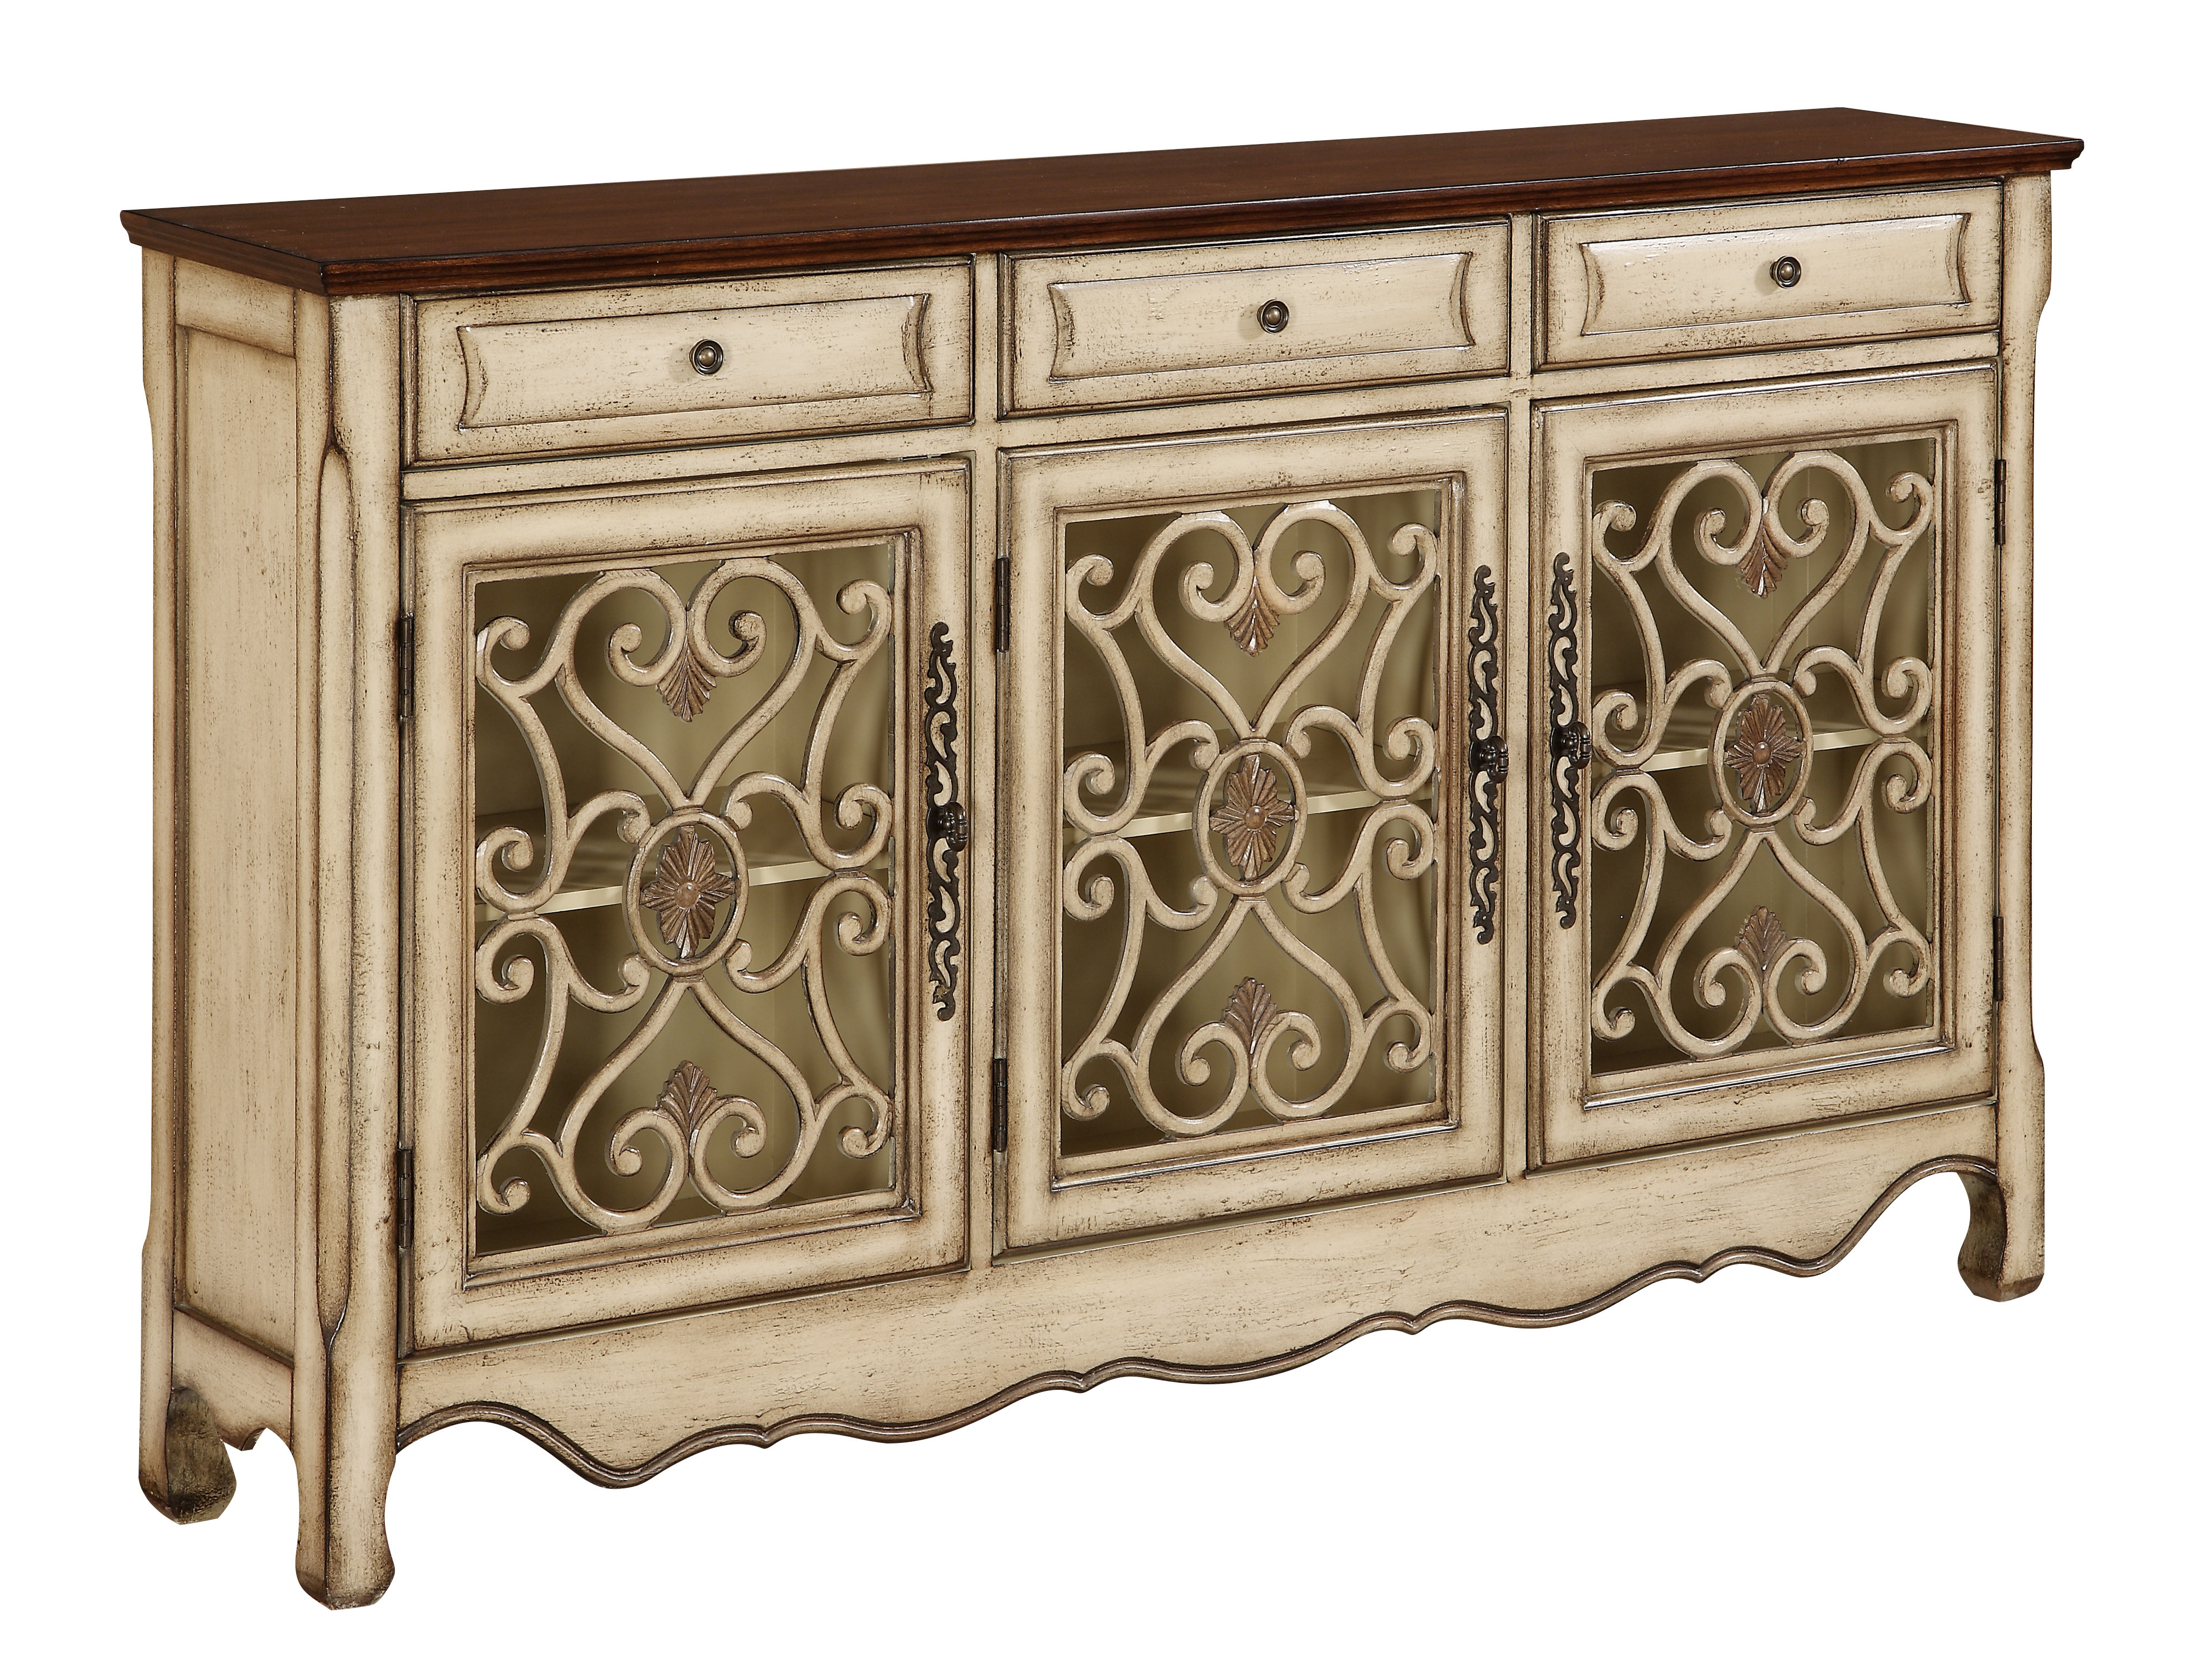 Farmhouse & Rustic Sideboards & Buffets | Birch Lane Regarding Ames Sideboards (View 11 of 20)